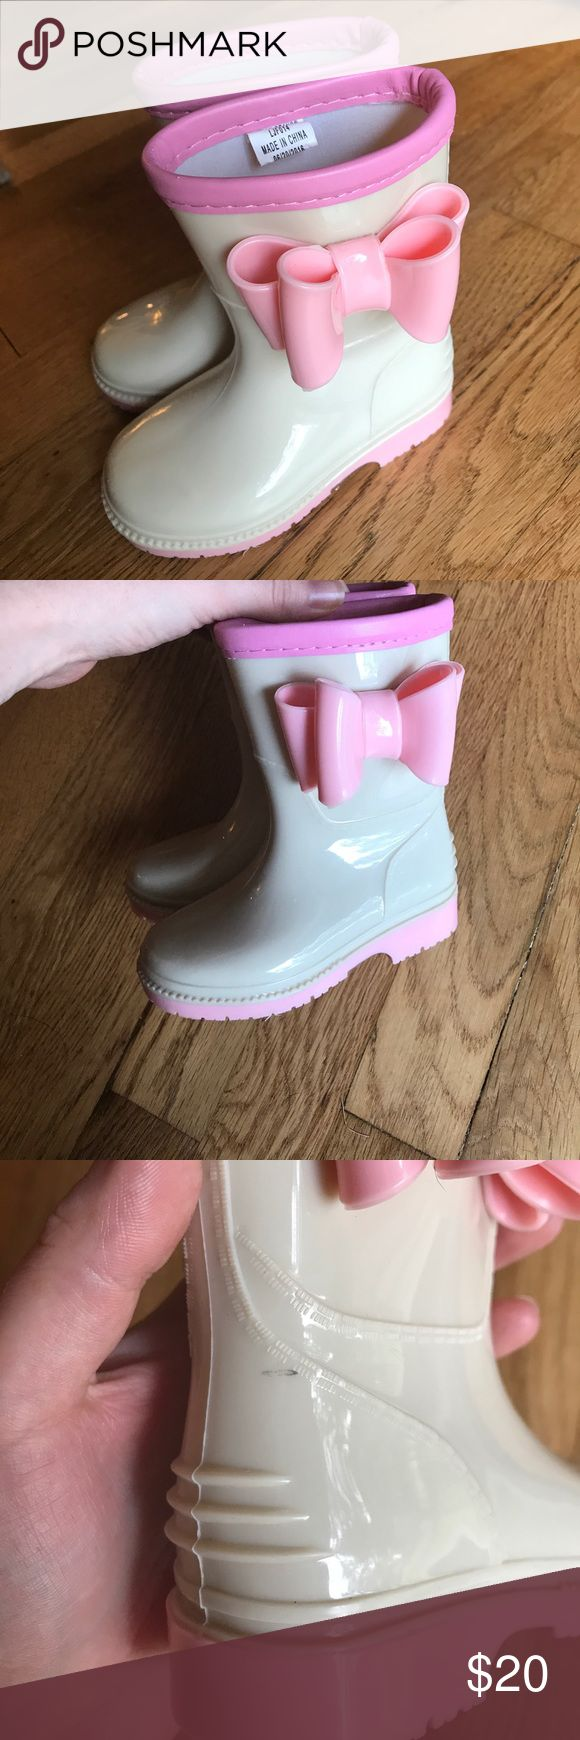 🌸HP🌸 Jelly Beans Boots Hands down the CUTEST boots EVER!!! I have been holding onto them like a hoarder because I love them so much but my daughter outgrew them 6 months ago 🙈 these are well made and look excellent. There is a small scuff as shown in pic 3 that you can probably buff out. I also have the box! Jelly Beans Shoes Rain & Snow Boots